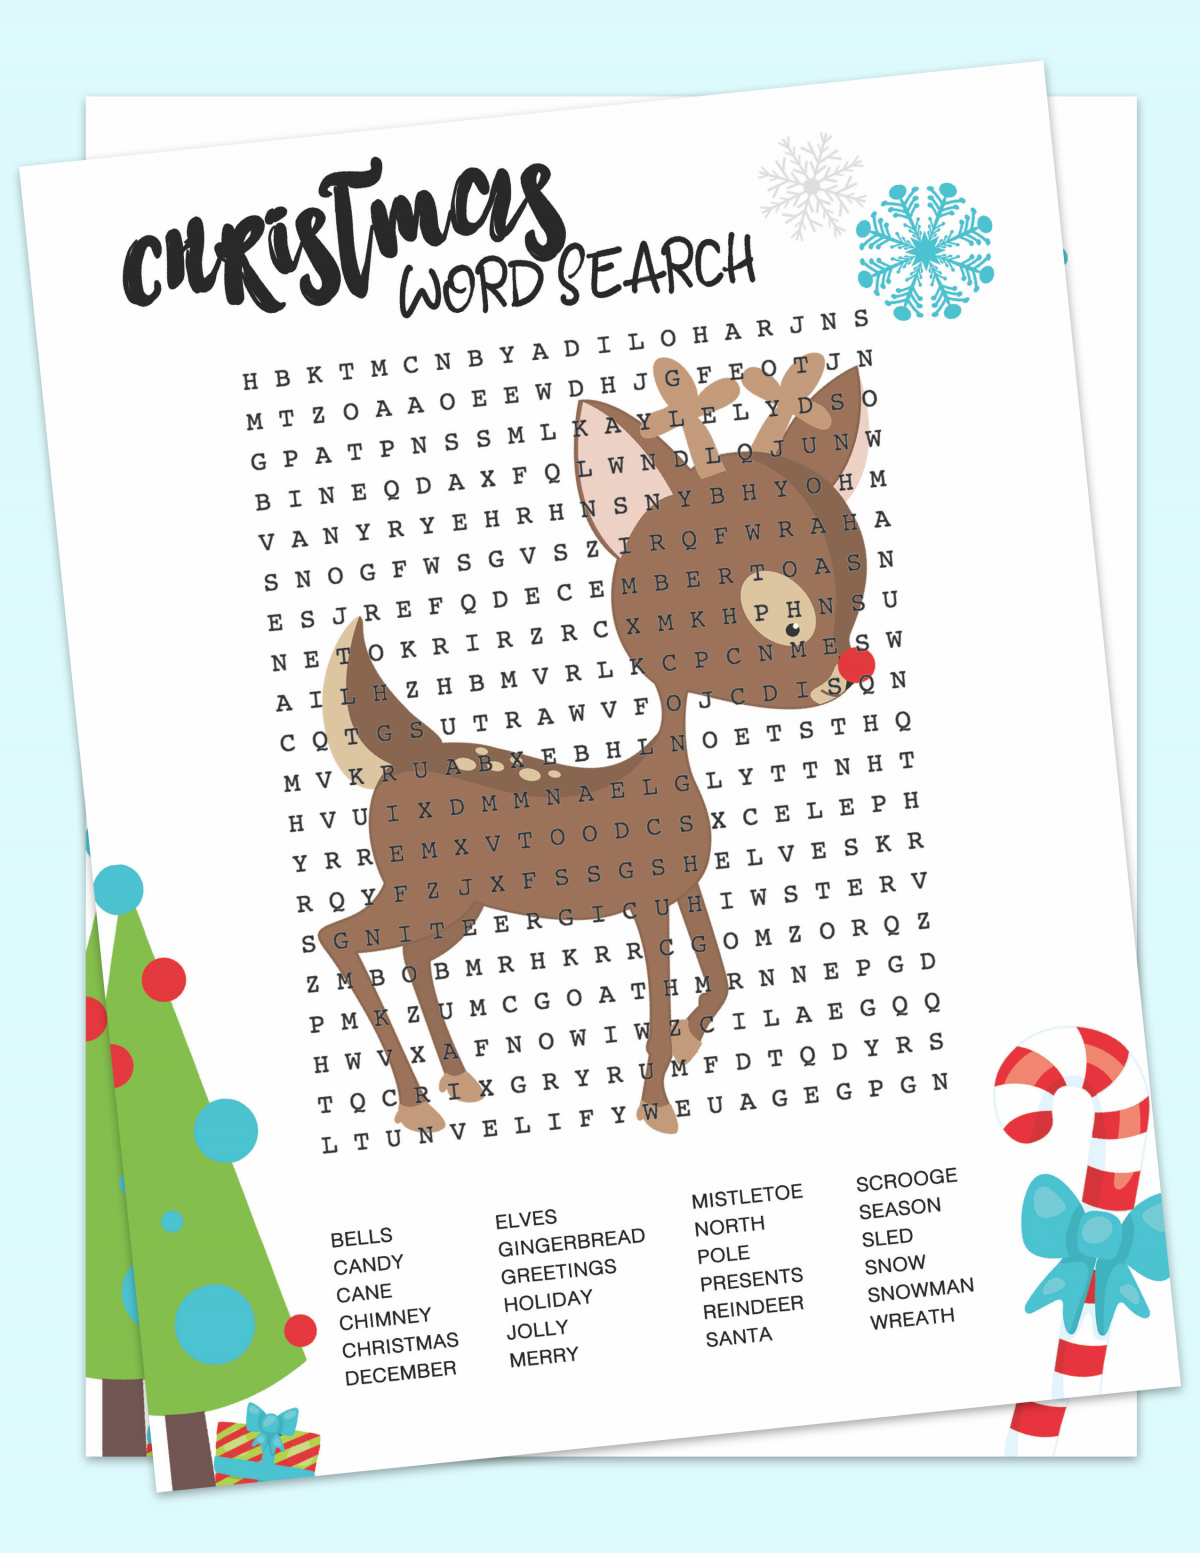 Rudolph Wordserch Free Printable, christnas wordsearch, chrstmas wordsearch printable, Rudolph Wordserch